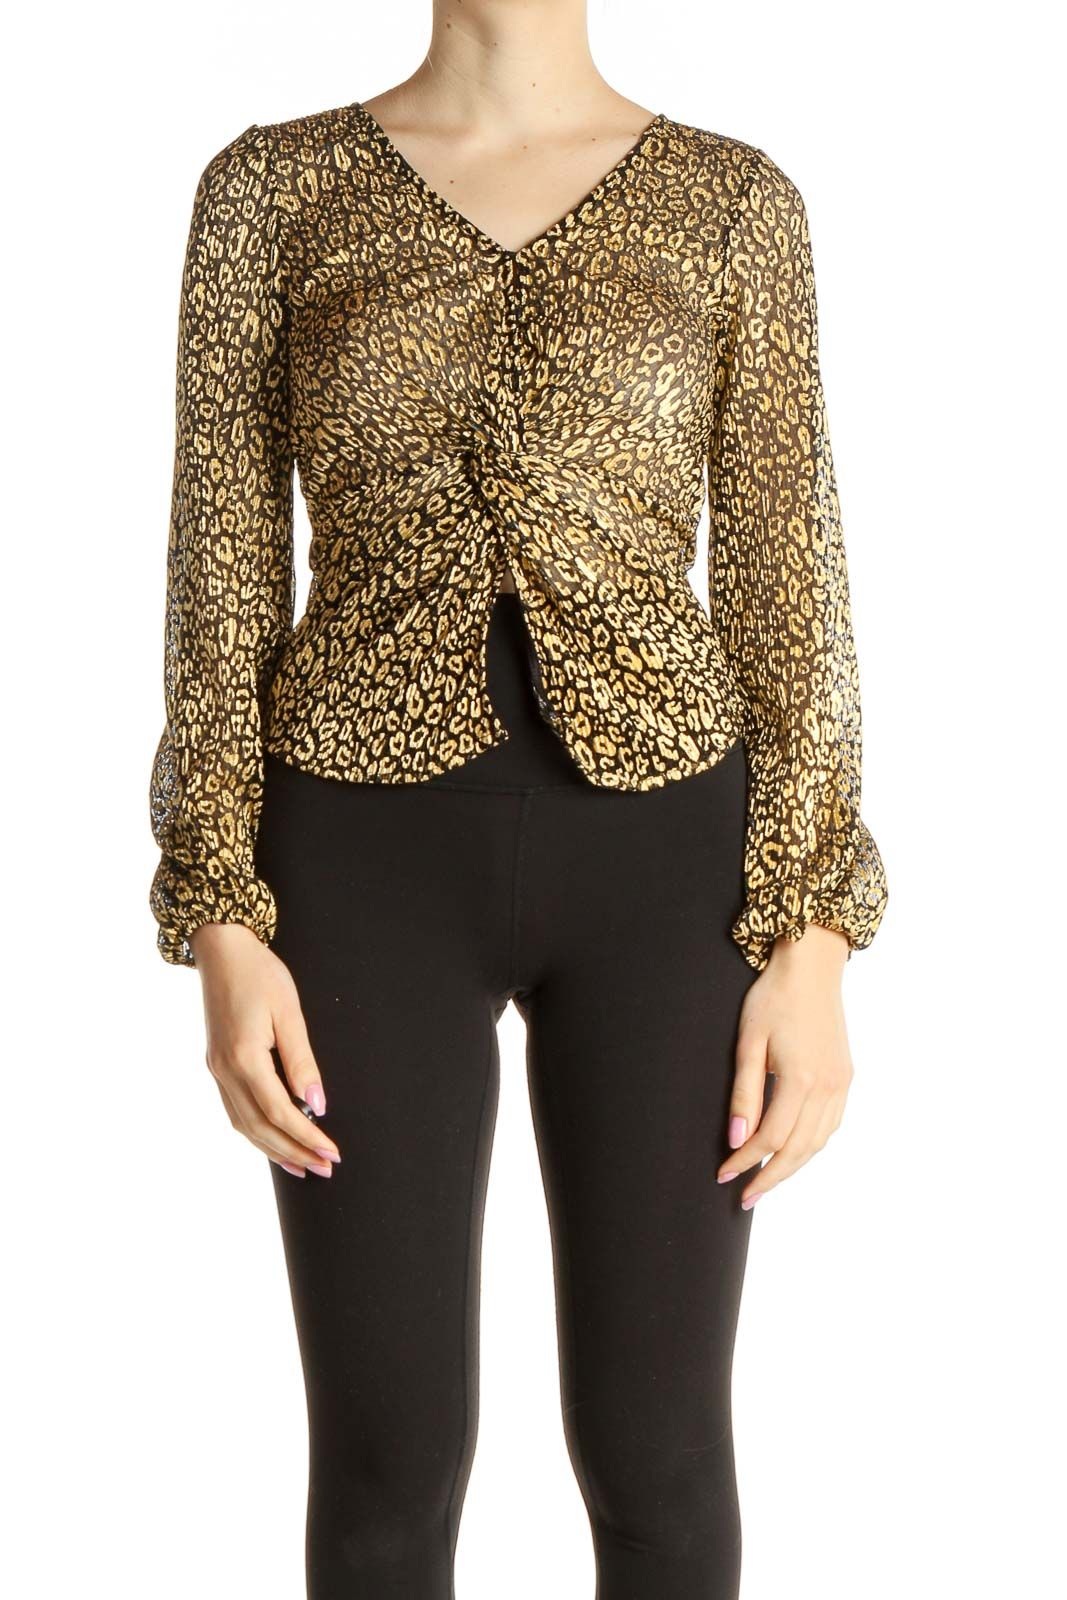 Brown Animal Print All Day Wear Blouse Front